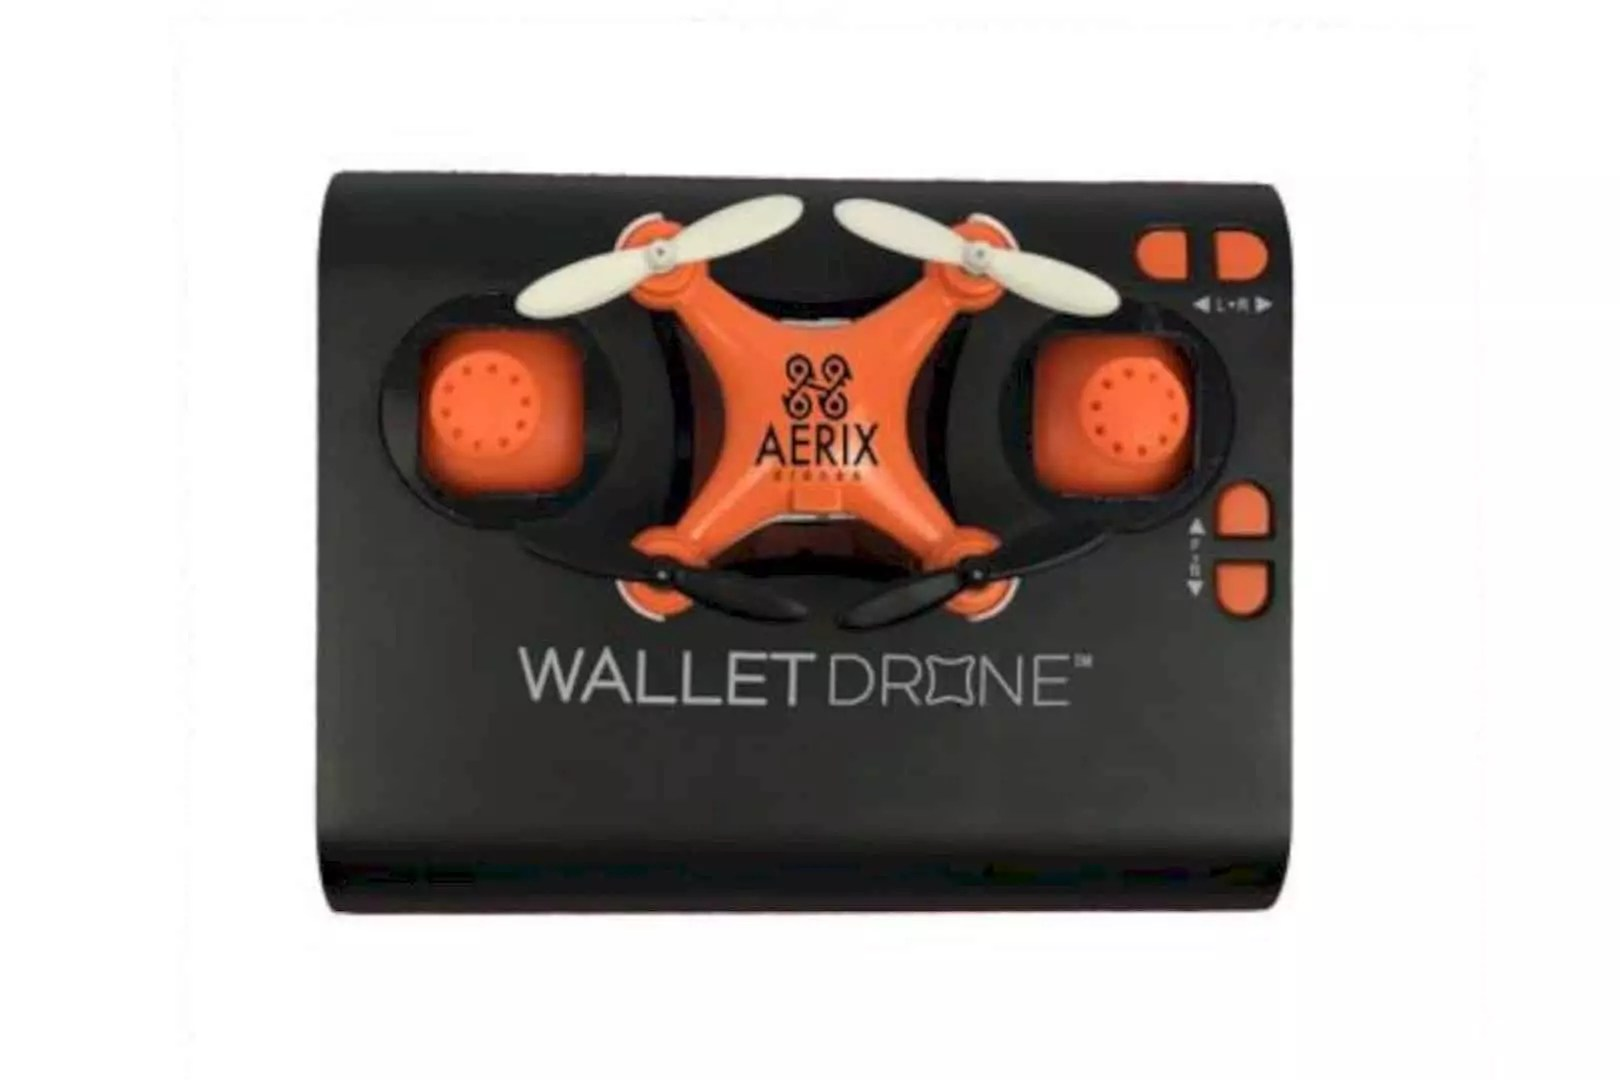 Aerix Wallet Drone: The World's Smallest Quadcopter from Aerix Drones